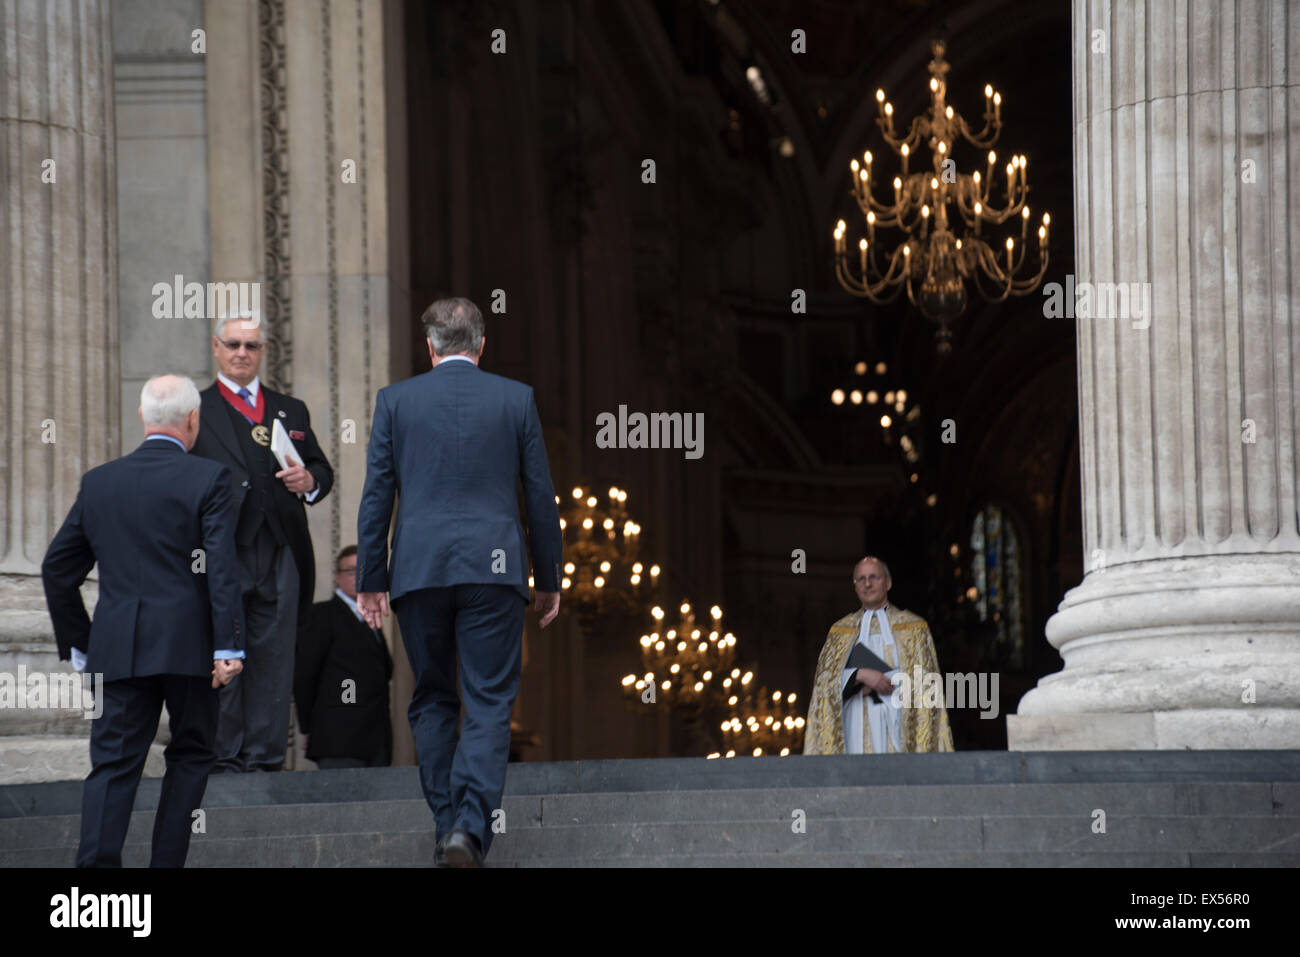 London, UK. 07th July, 2015. 10th Anniversary of London Bombings, UK Prime Minister David Cameron arrives at St Paul's Cathedral for memorial service. London, UK. 7/7, 10 year anniversary, London Bombings, 7th July. Credit:  Peter Manning/Alamy Live News Stock Photo